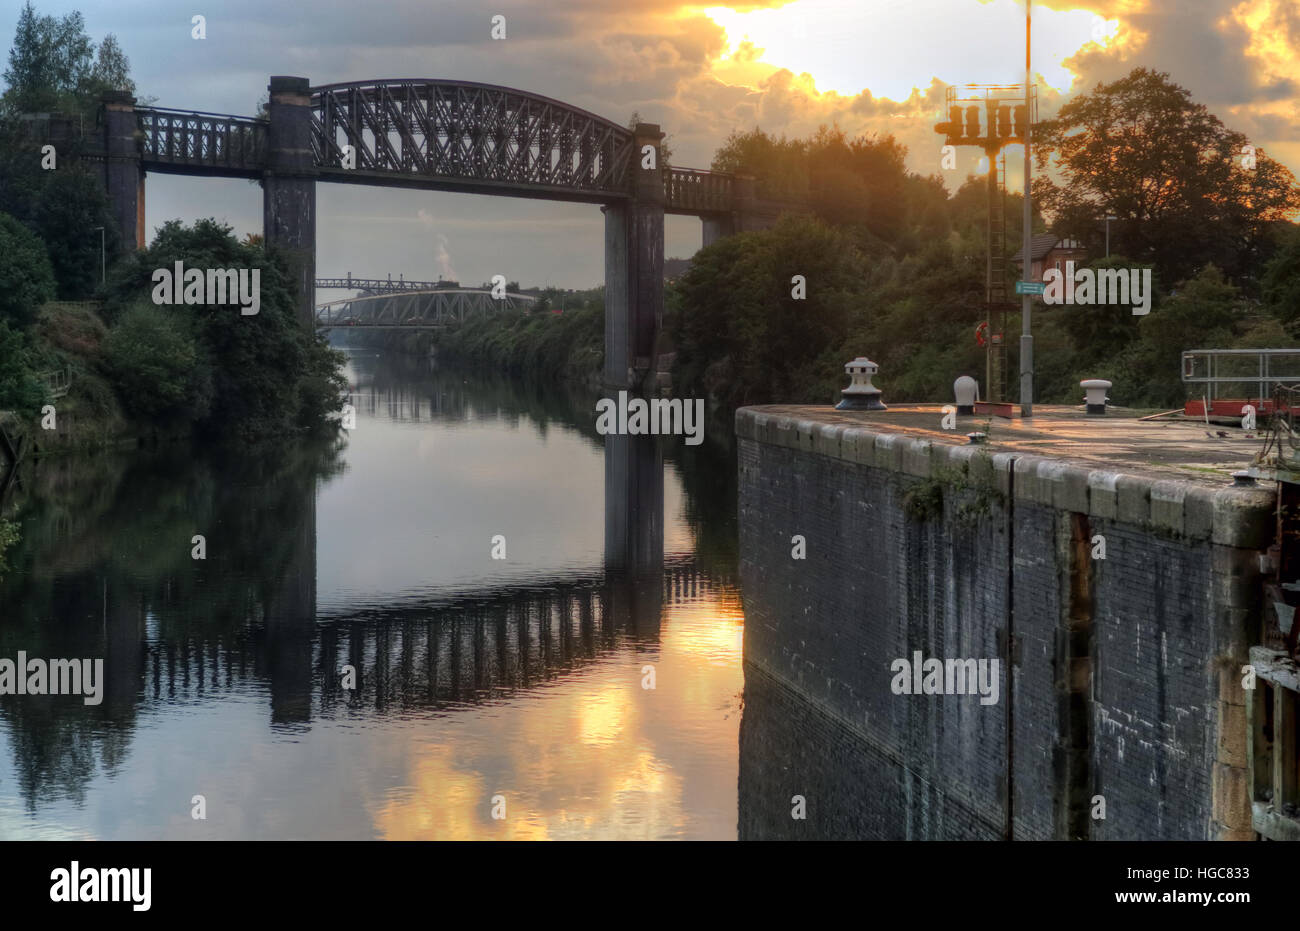 sun,set,sunset,evening,in,scenic,bridge,railway,trans-pennine,trail,transpennine,trail,water,reflection,WBC,cloud,sky,morning,lock,locks,London and North Western Railway,Latchford,Locks,Latchford,Lock,Latchford Village,,Stockport,North,western,railway,disused,,,,GoTonySmith,@HotpixUK,Tony,Smith,UK,GB,Great,Britain,United,Kingdom,English,British,England,problem,with,problem with,issue with,Warrington,south,Buy Pictures of,Buy Images Of,Images of,Stock Images,Tony Smith,United Kingdom,Great Britain,British Isles,South Warrington